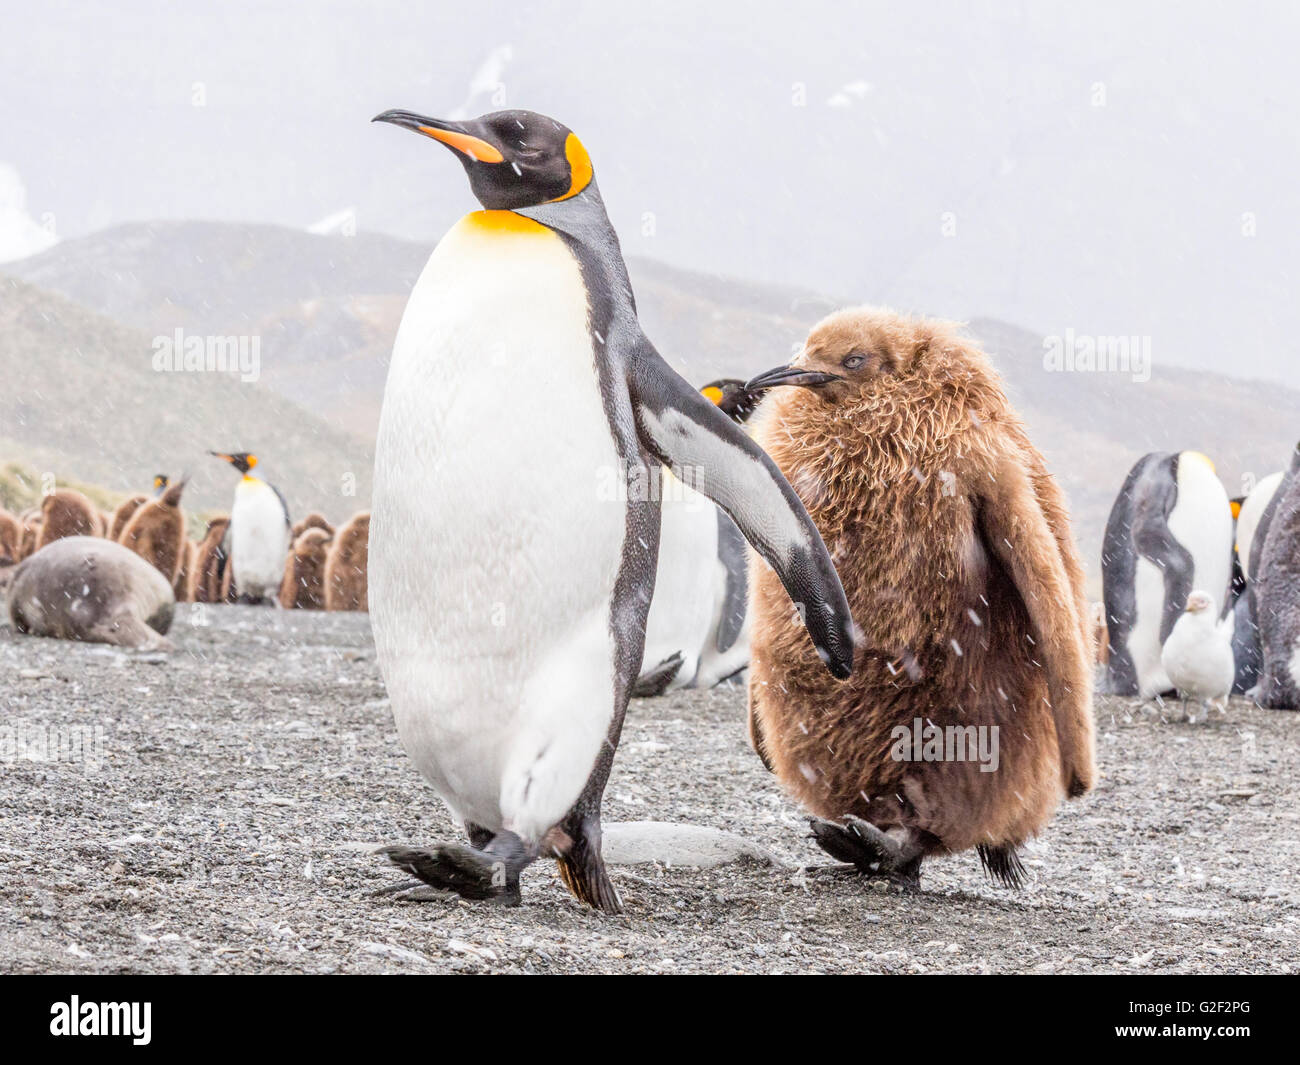 A parent King Penguin walks briskly along a beach with its juvenile in tow - Stock Image